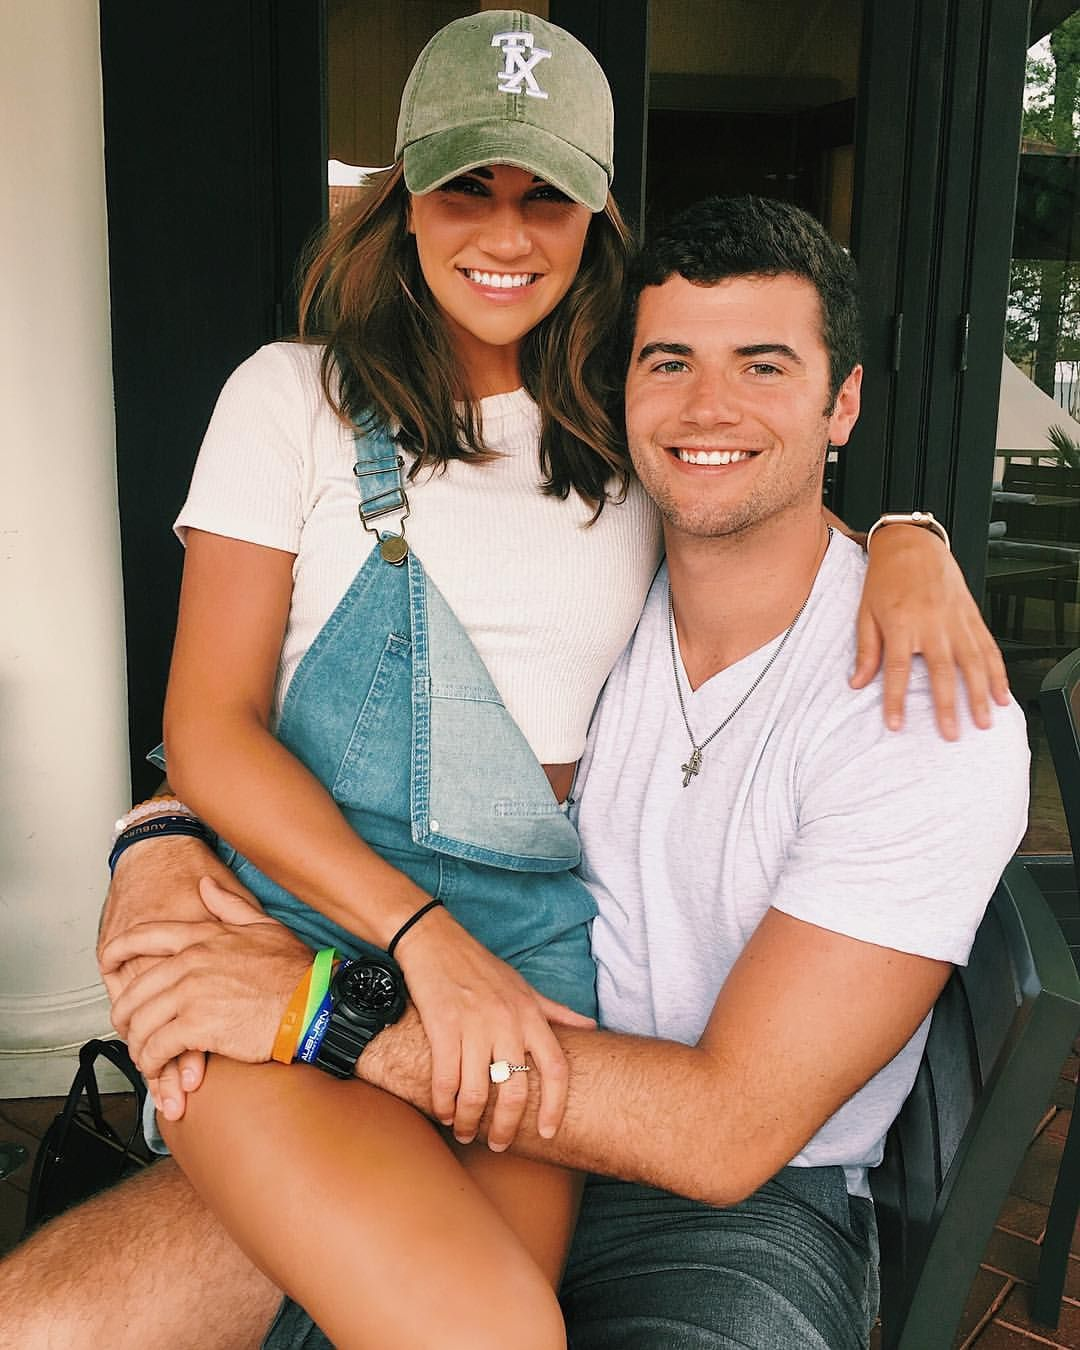 4 652 Likes 26 Comments Jarrett Stidham Jarrett Stidham8 On Instagram Sweet Summertime With My Cute Couples Goals Cute Couples Cute Relationship Goals